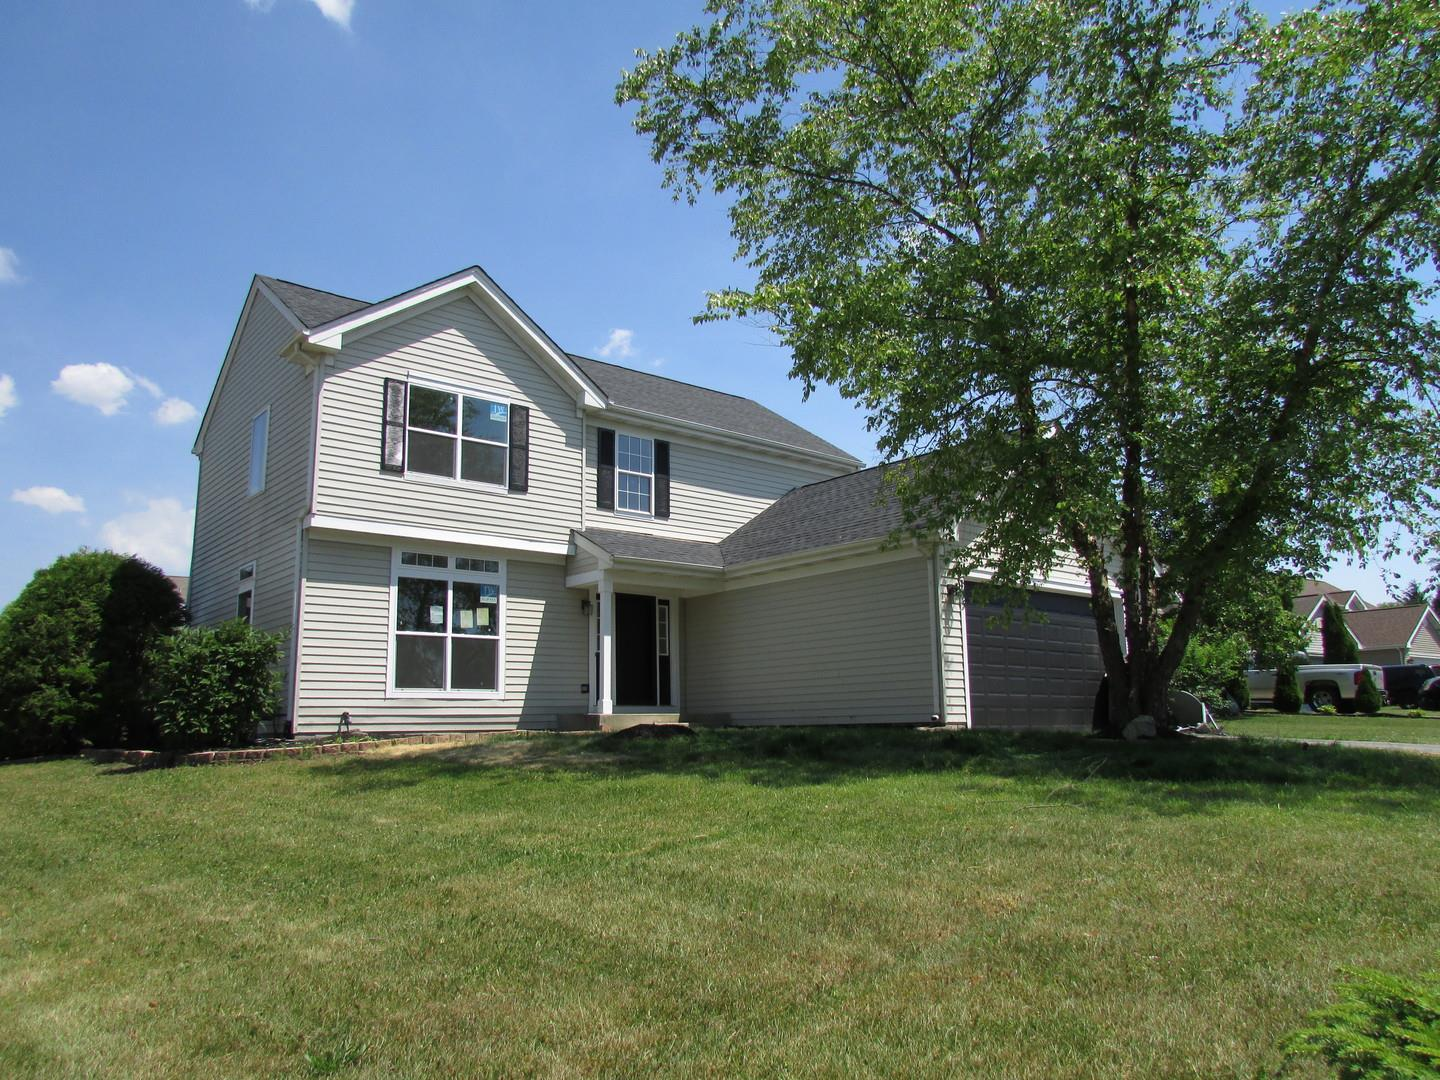 165 S Osage Court, Round Lake, IL 60073 - #: 10754137